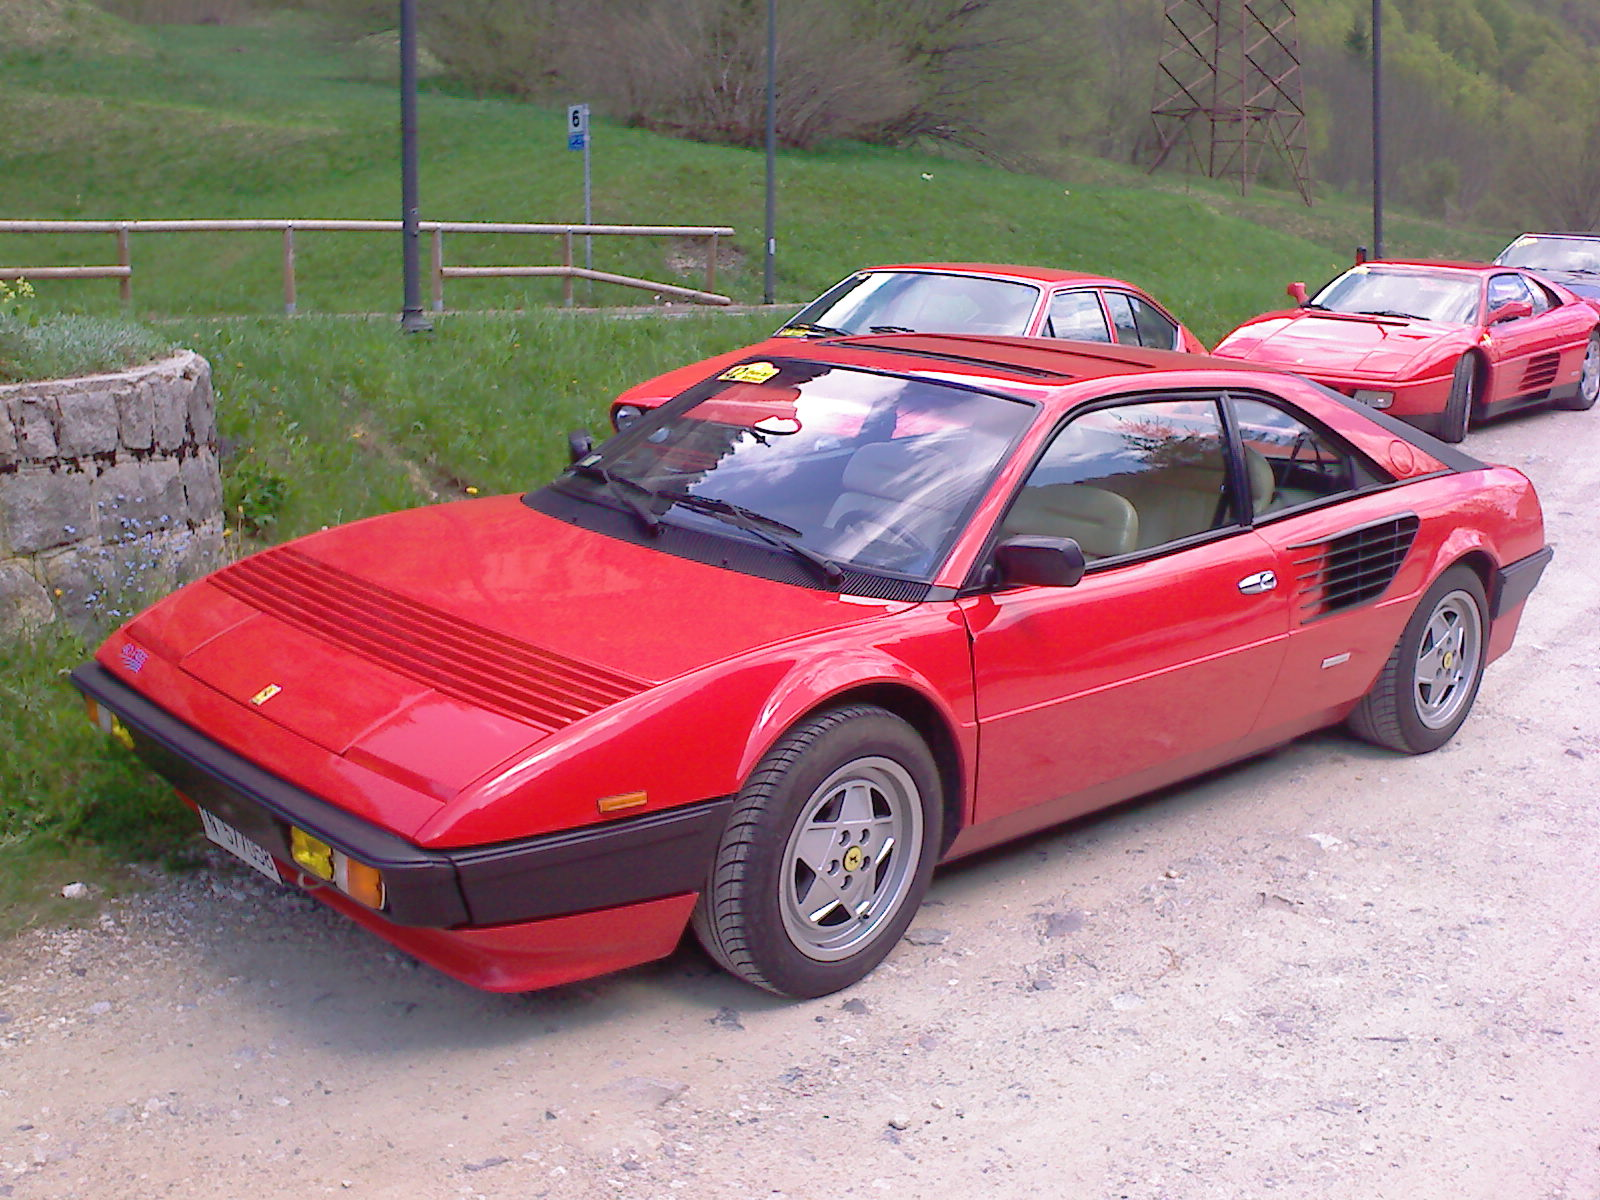 file ferrari mondial 8 front wikimedia commons. Black Bedroom Furniture Sets. Home Design Ideas